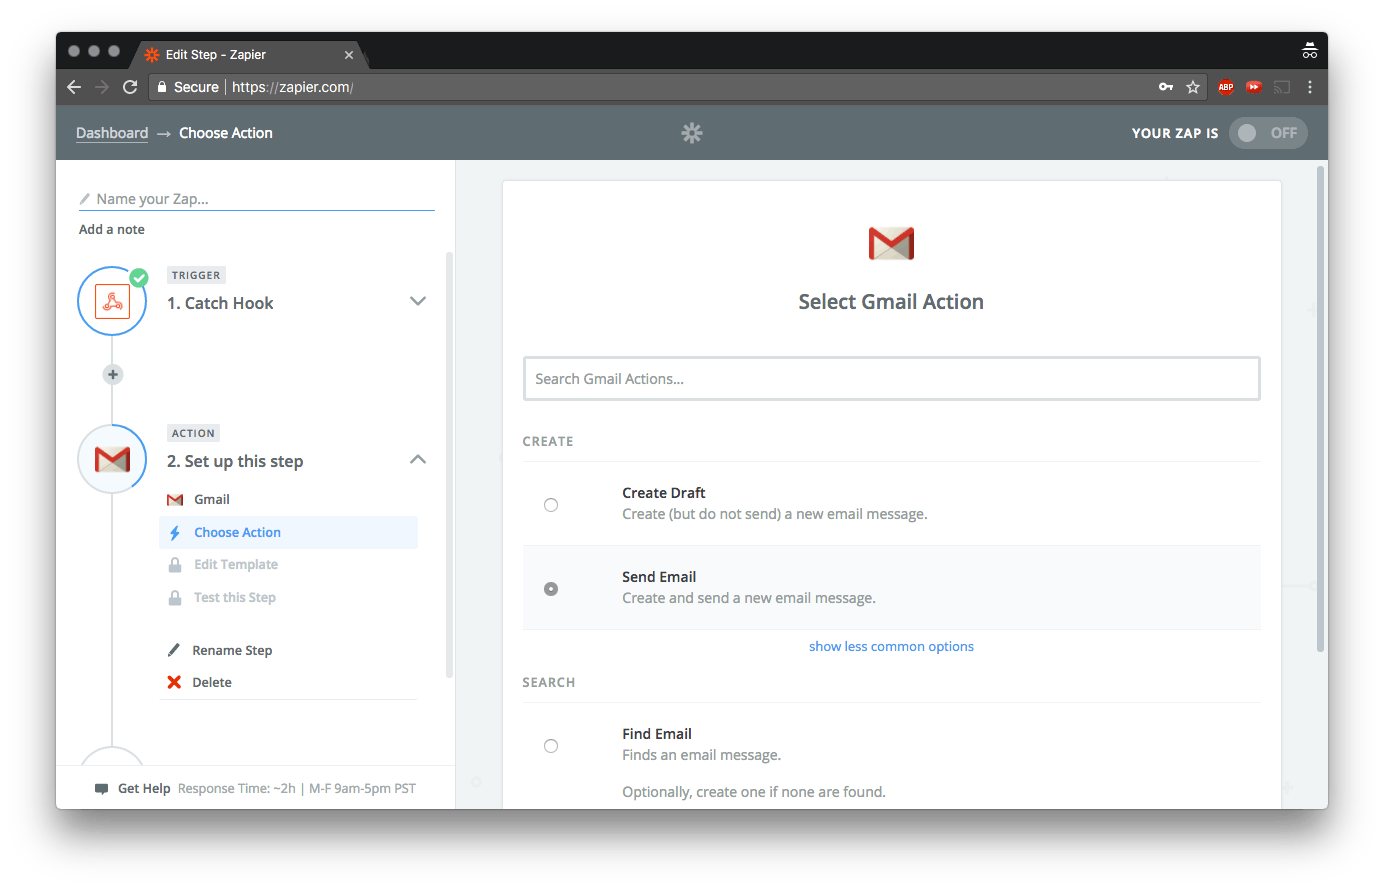 Select Gmail as the next action and check the Send Email